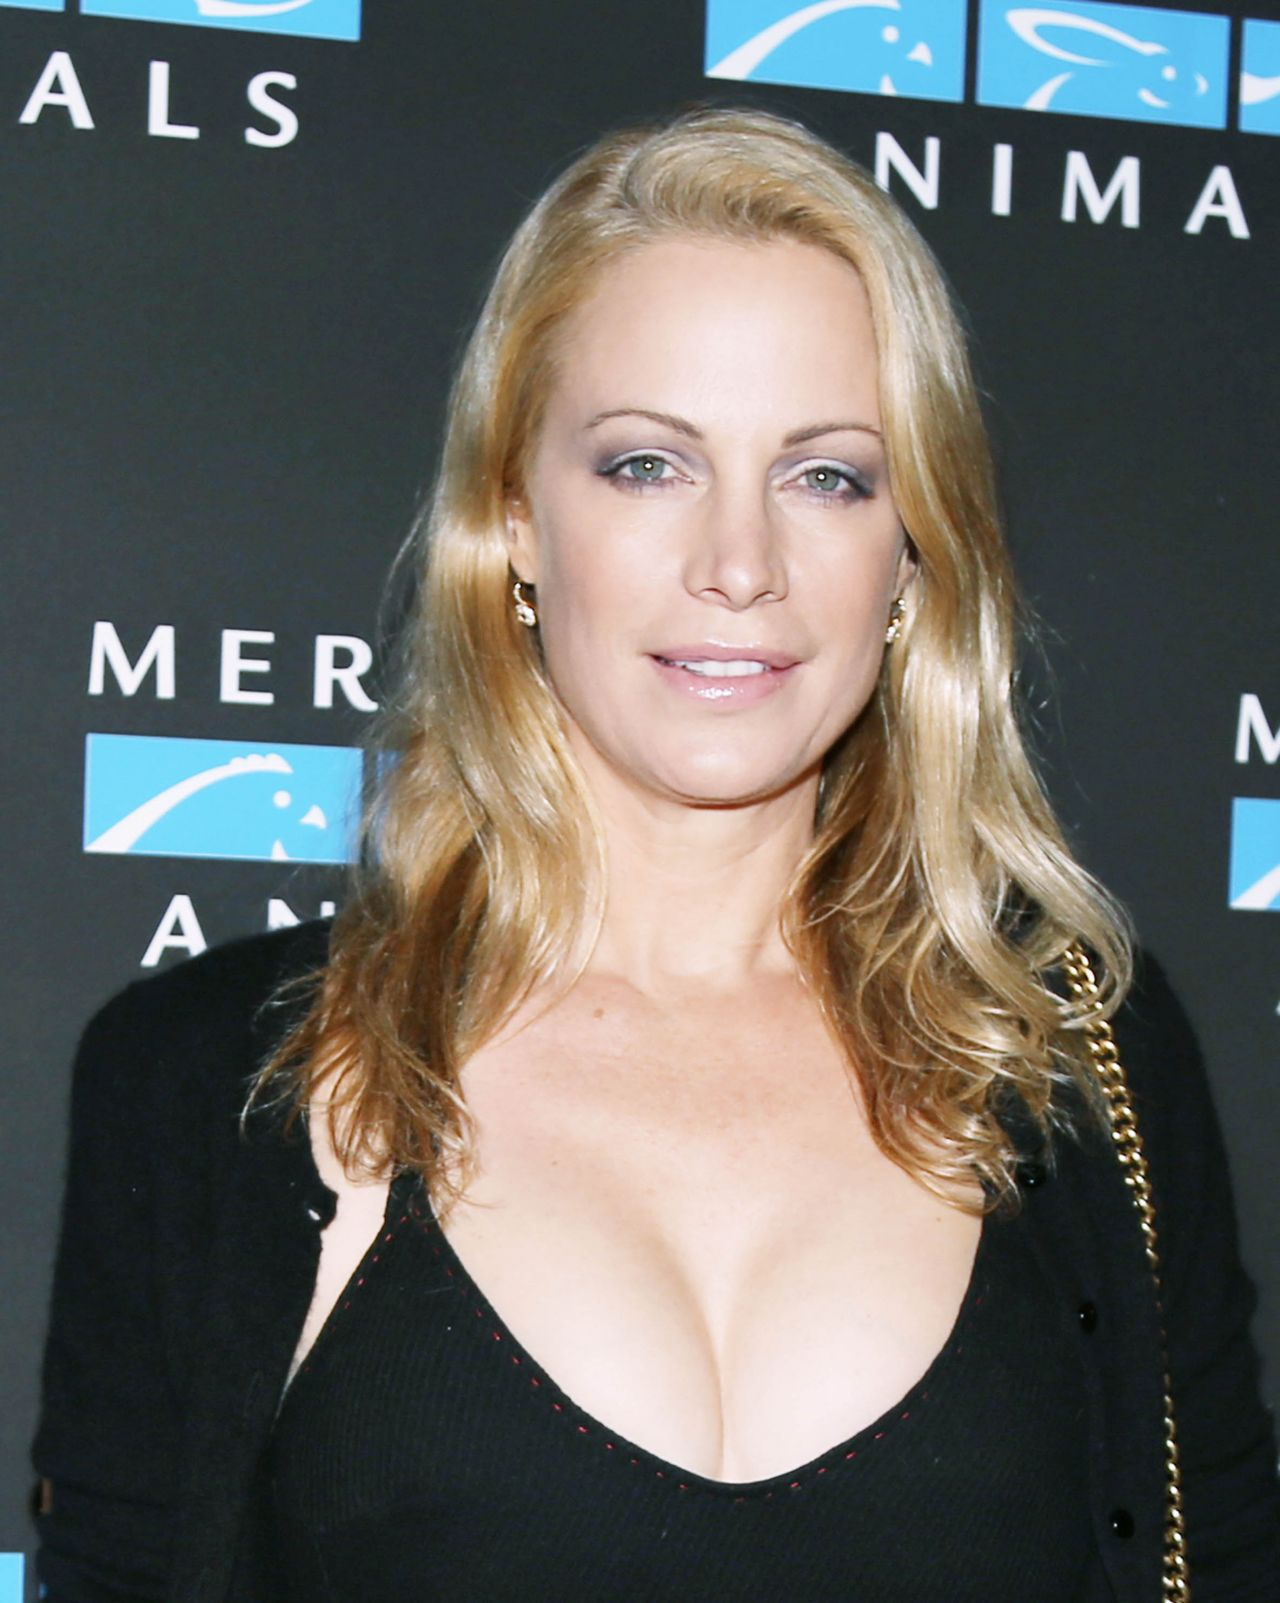 alison eastwood - photo #12